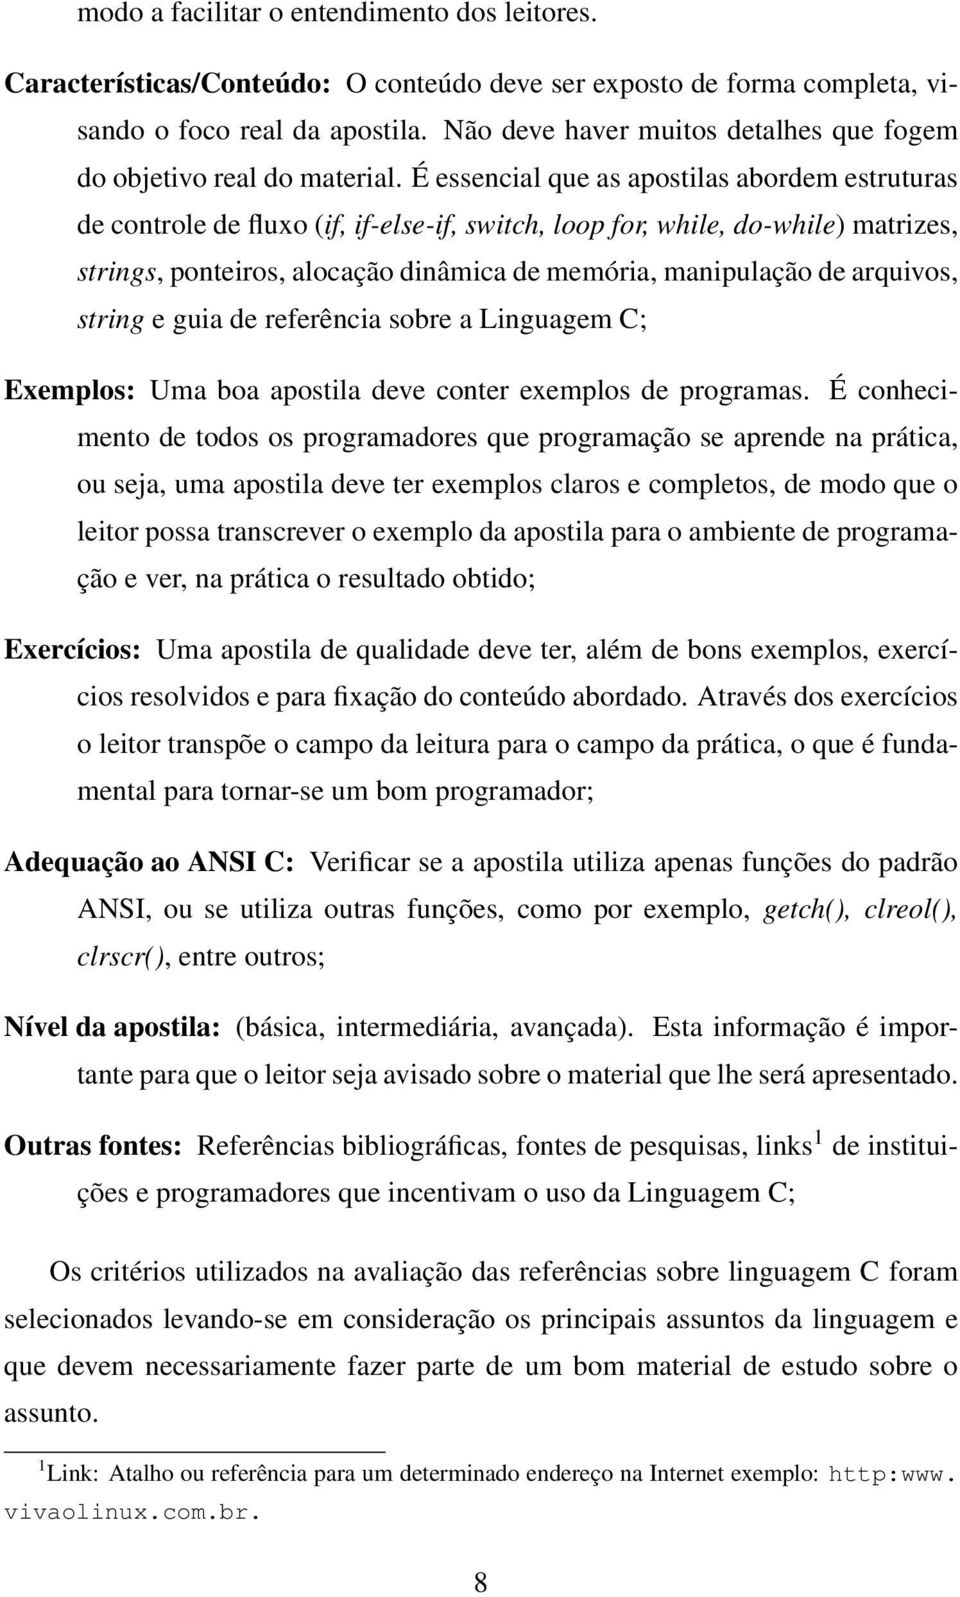 É essencial que as apostilas abordem estruturas de controle de fluxo (if, if-else-if, switch, loop for, while, do-while) matrizes, strings, ponteiros, alocação dinâmica de memória, manipulação de